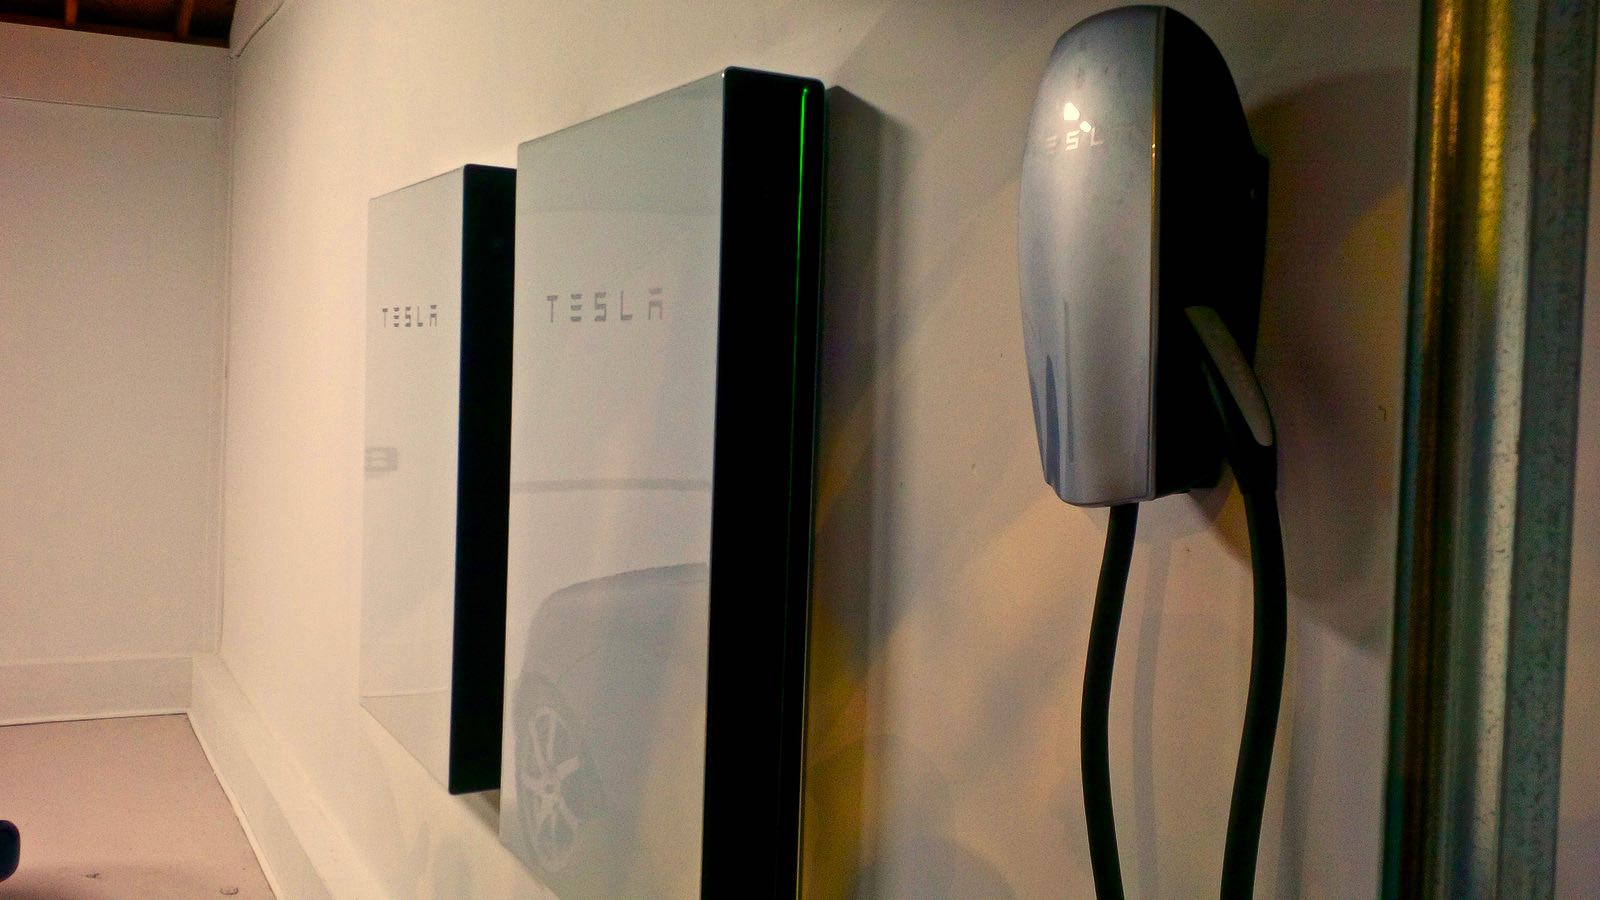 hight resolution of tesla dumbs down powerwall 2 offering but it actually comes in two versions